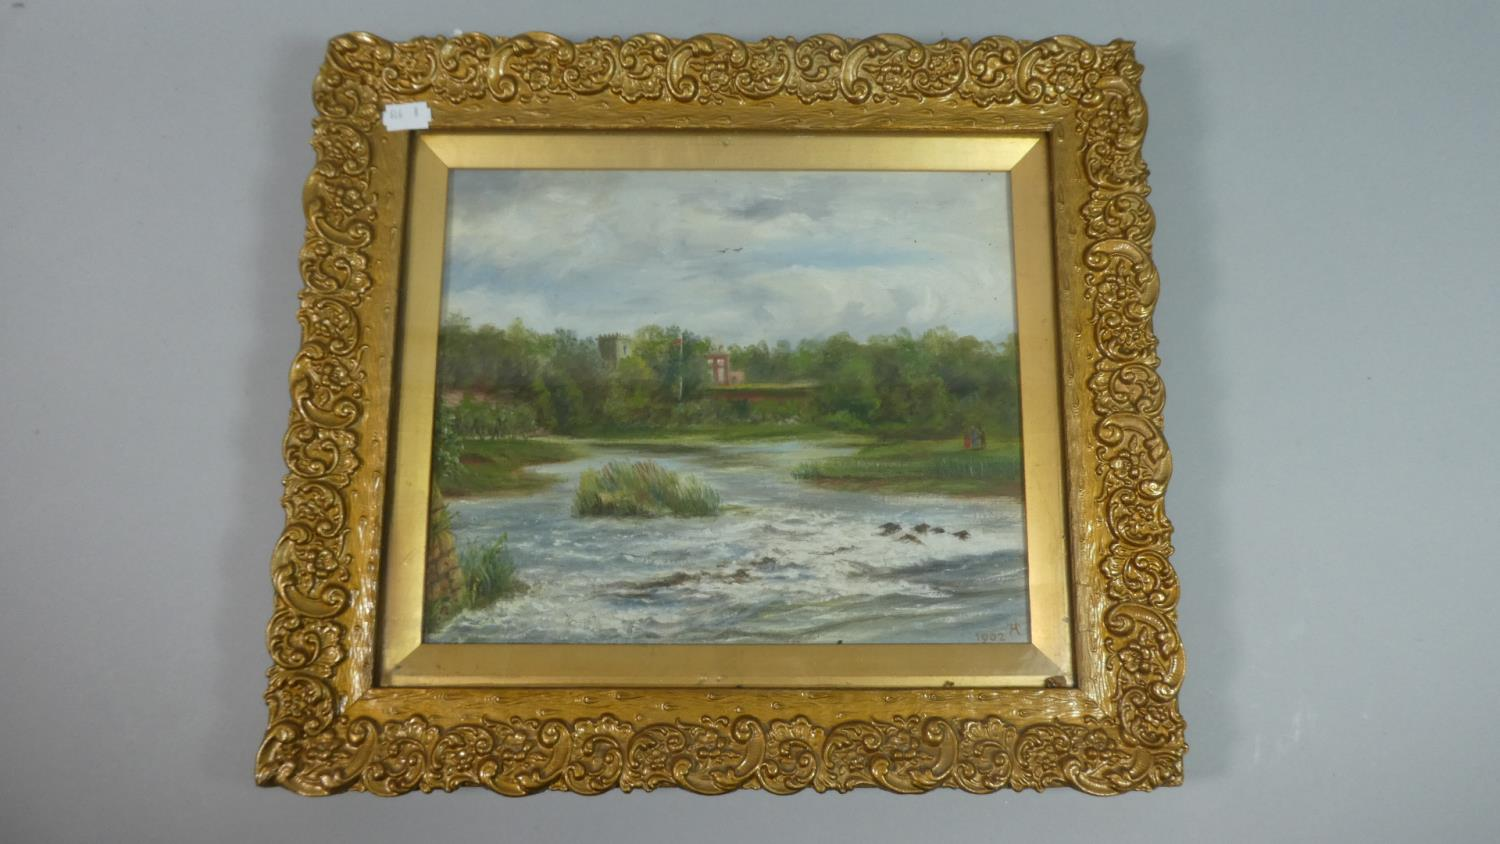 Lot 155 - A Gilt Framed Oil on Board Depicting River in Flood, Dated 1902, 29cm Wide